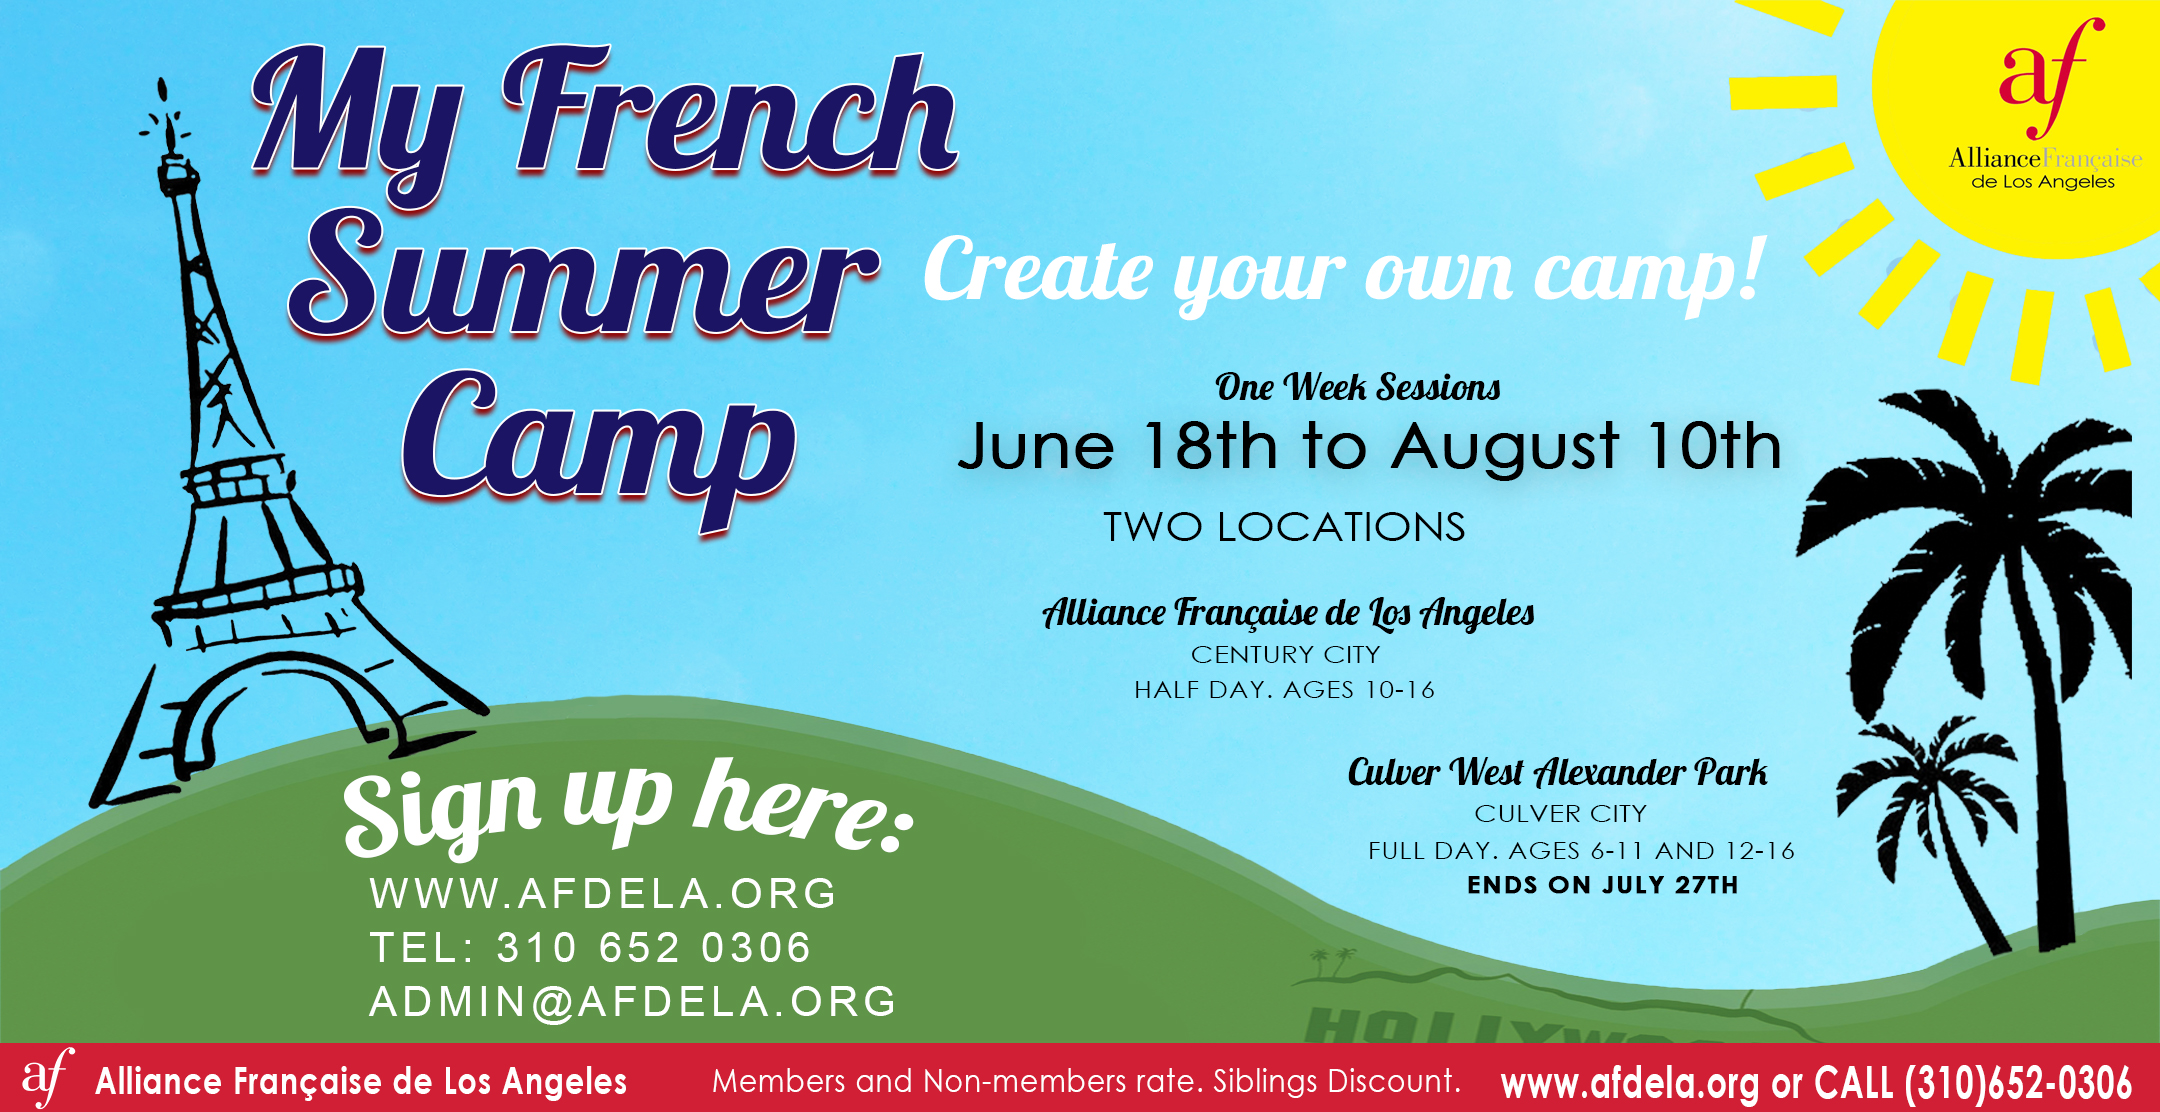 Summer Camp Alliance Francaise de Los Angeles French Summer Camp 2018